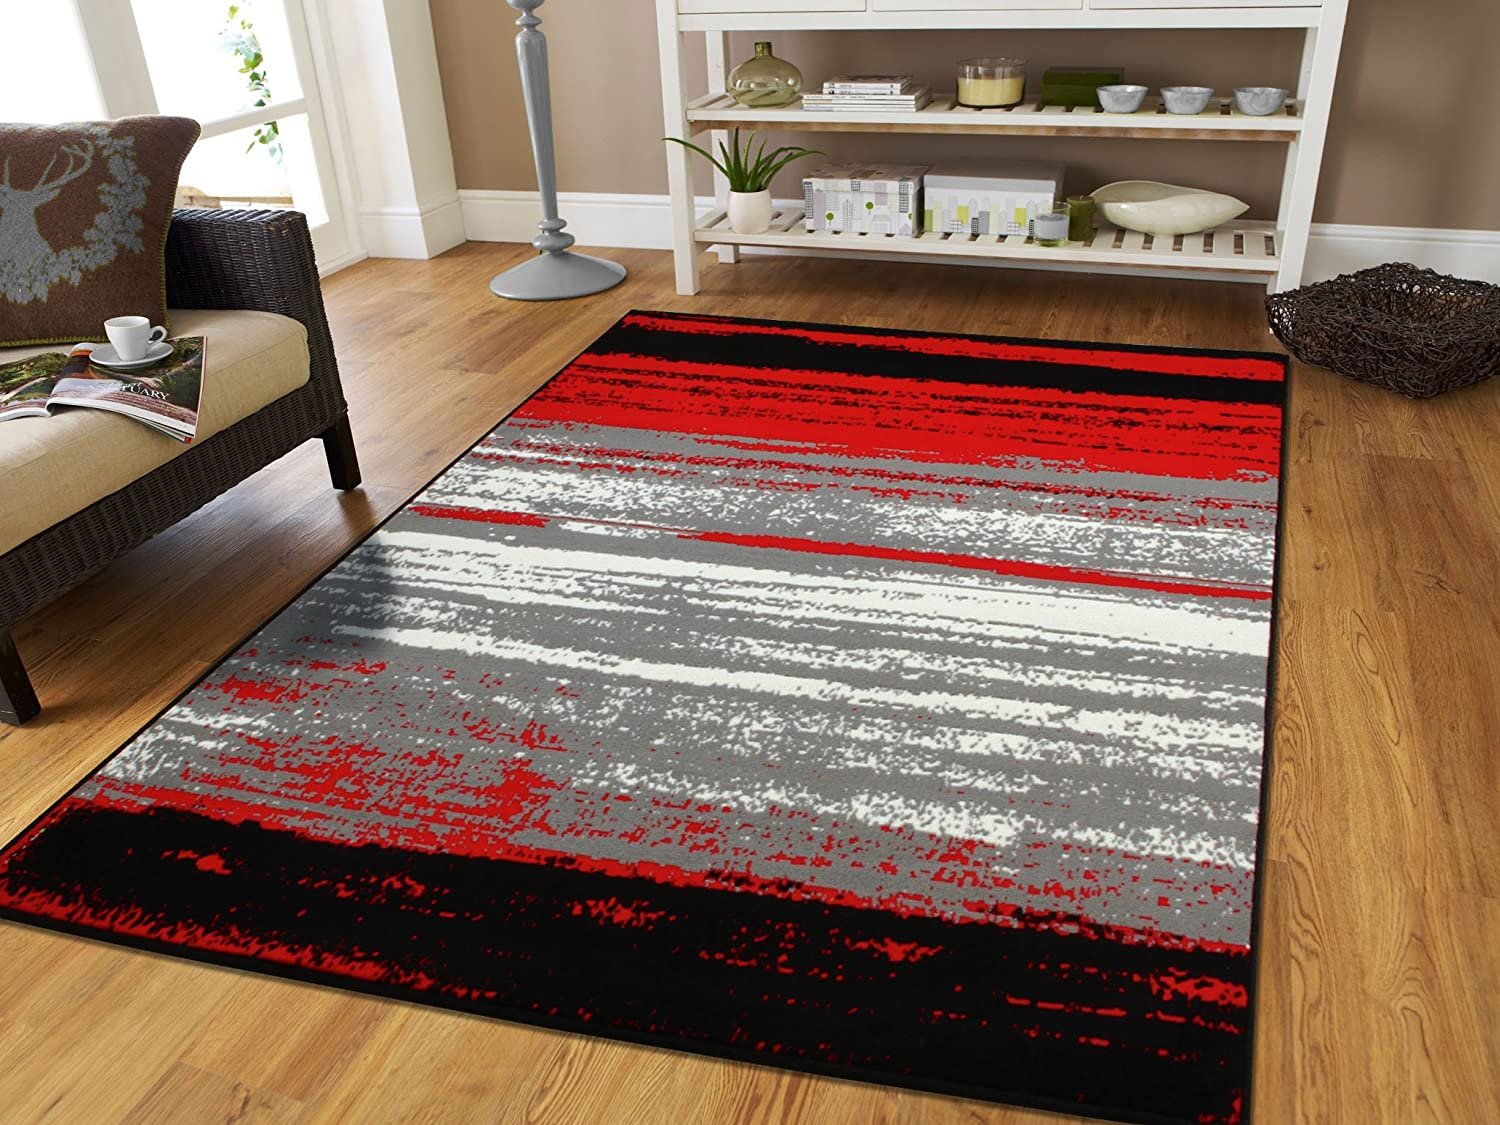 Amazon.com: Large Grey Modern Rugs For Living Room 8x10 Abstract Area Rugs  Rugs For Office And Kitchen Clearance Red Black Ivory Cheap Rug Sets, ...